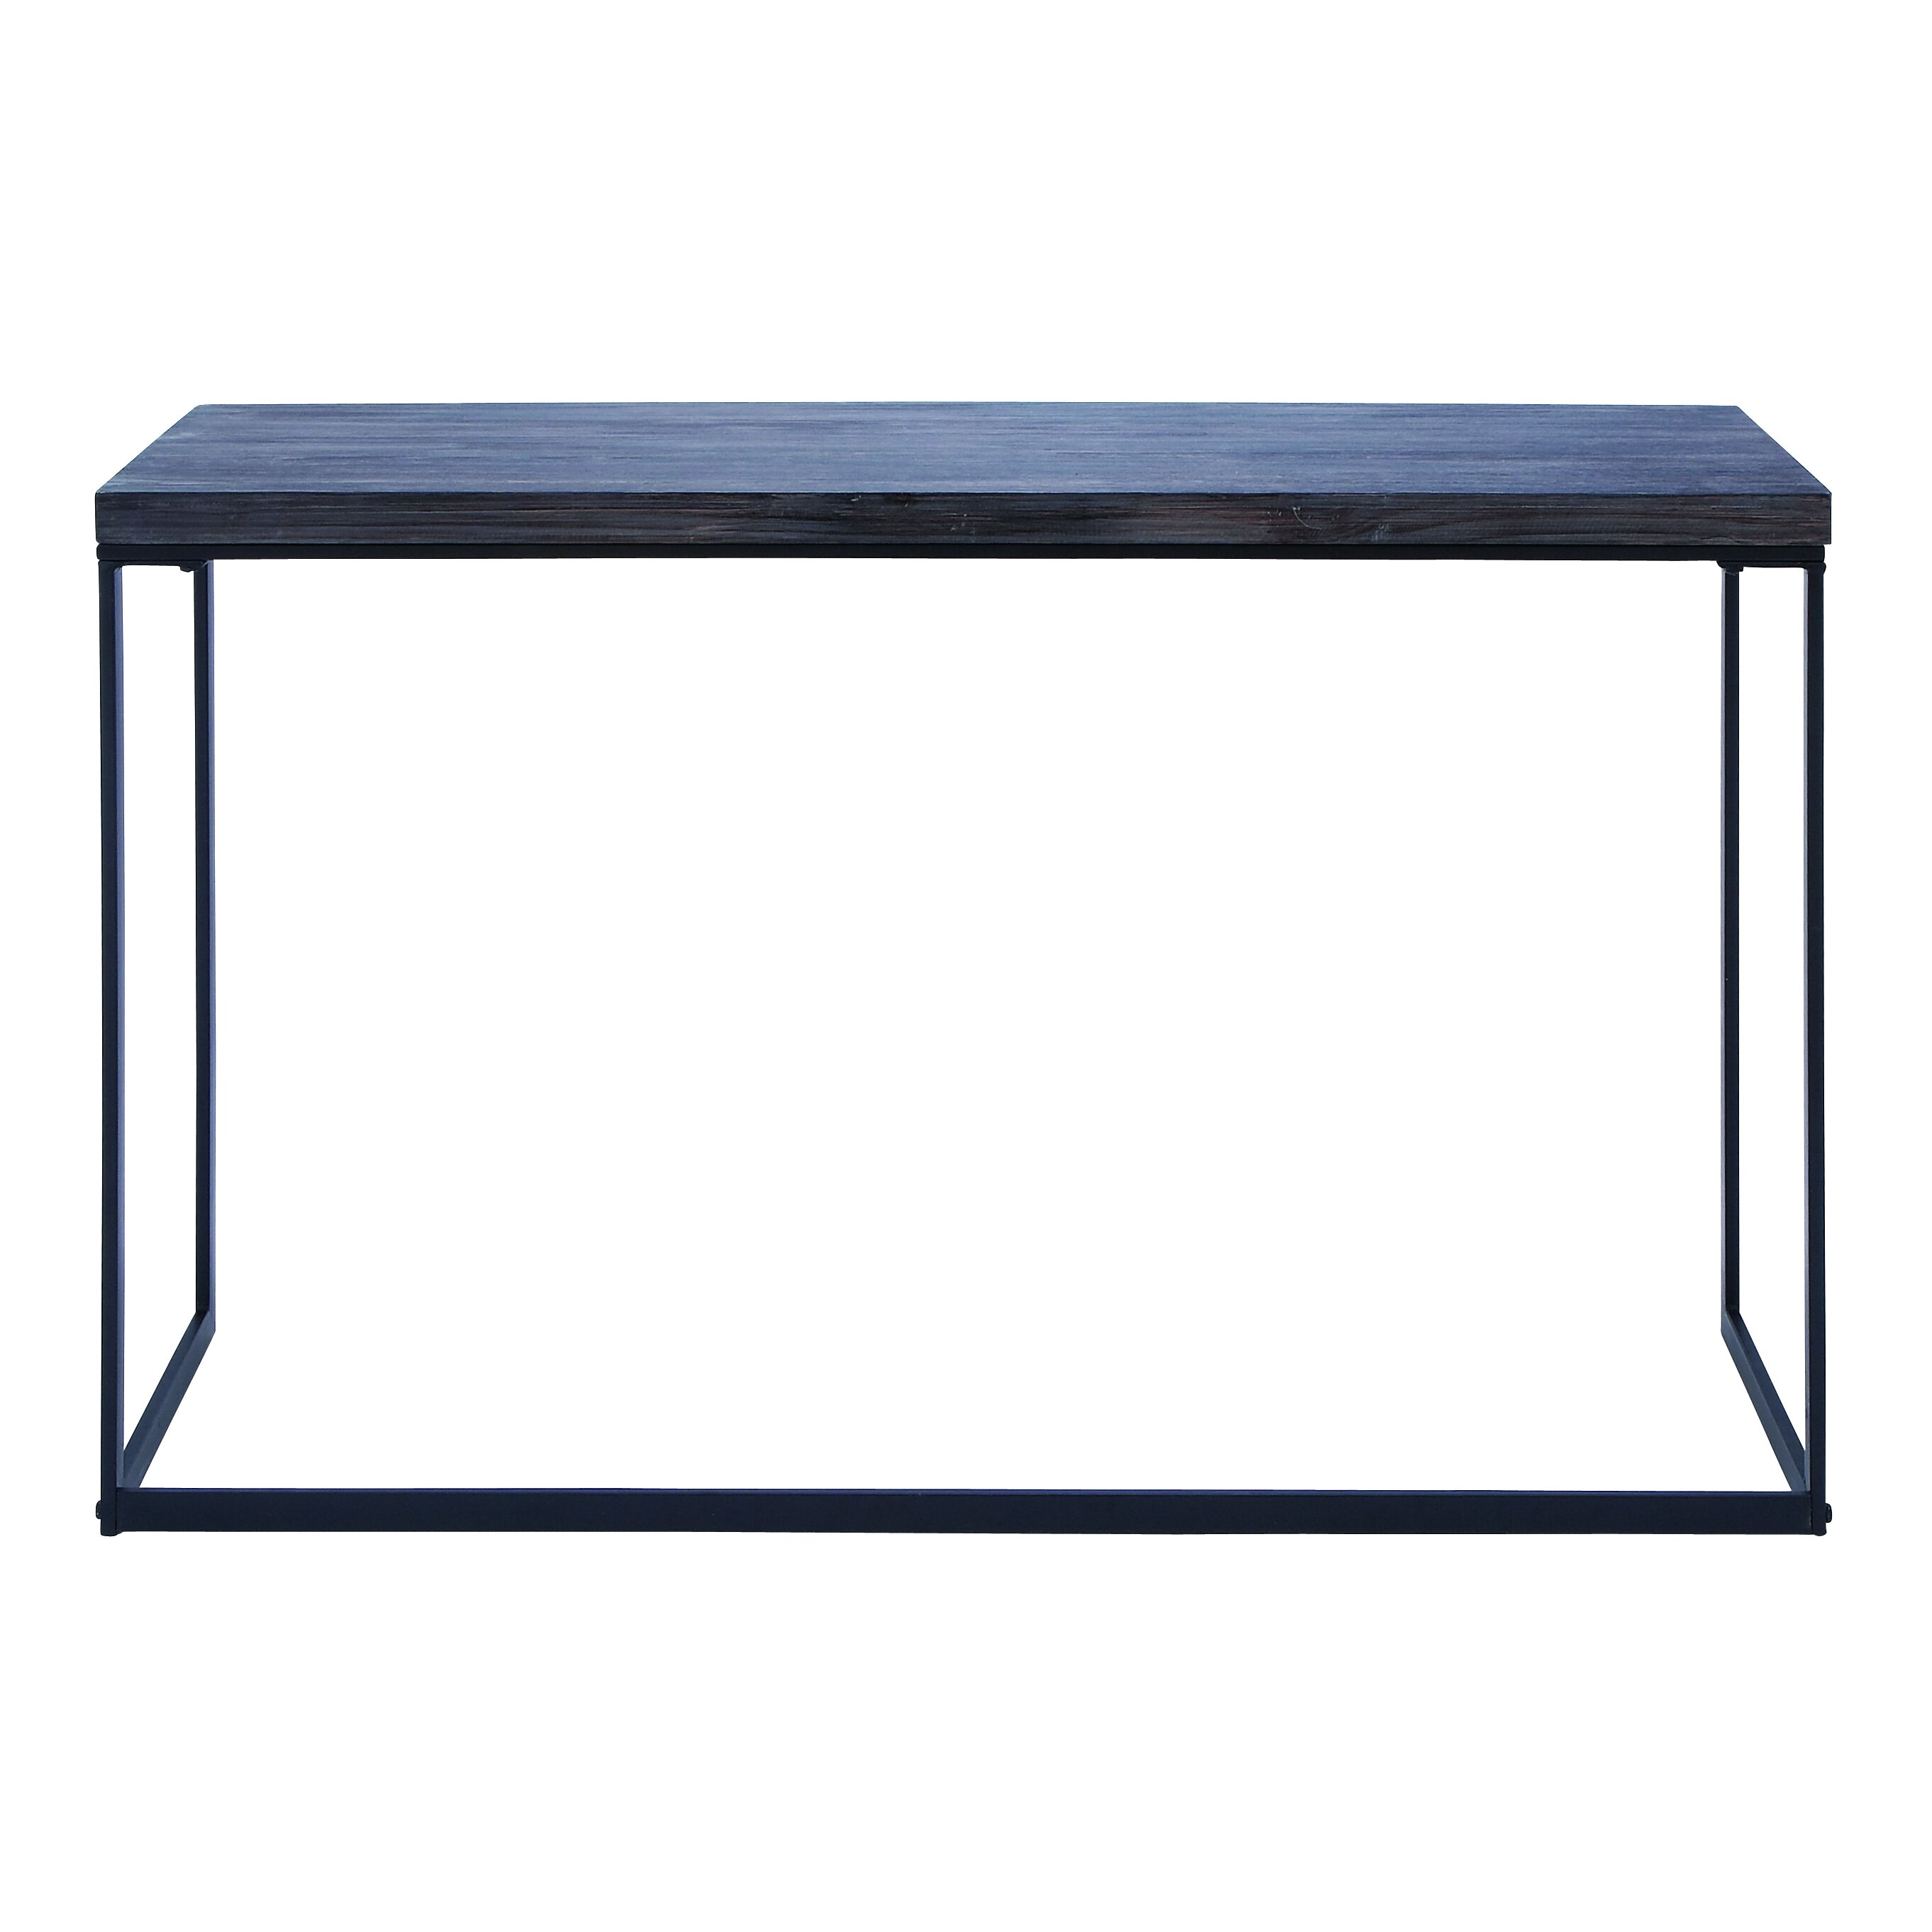 Woodland Imports Console Table Woodland Imports Console Table & Reviews | Wayfair